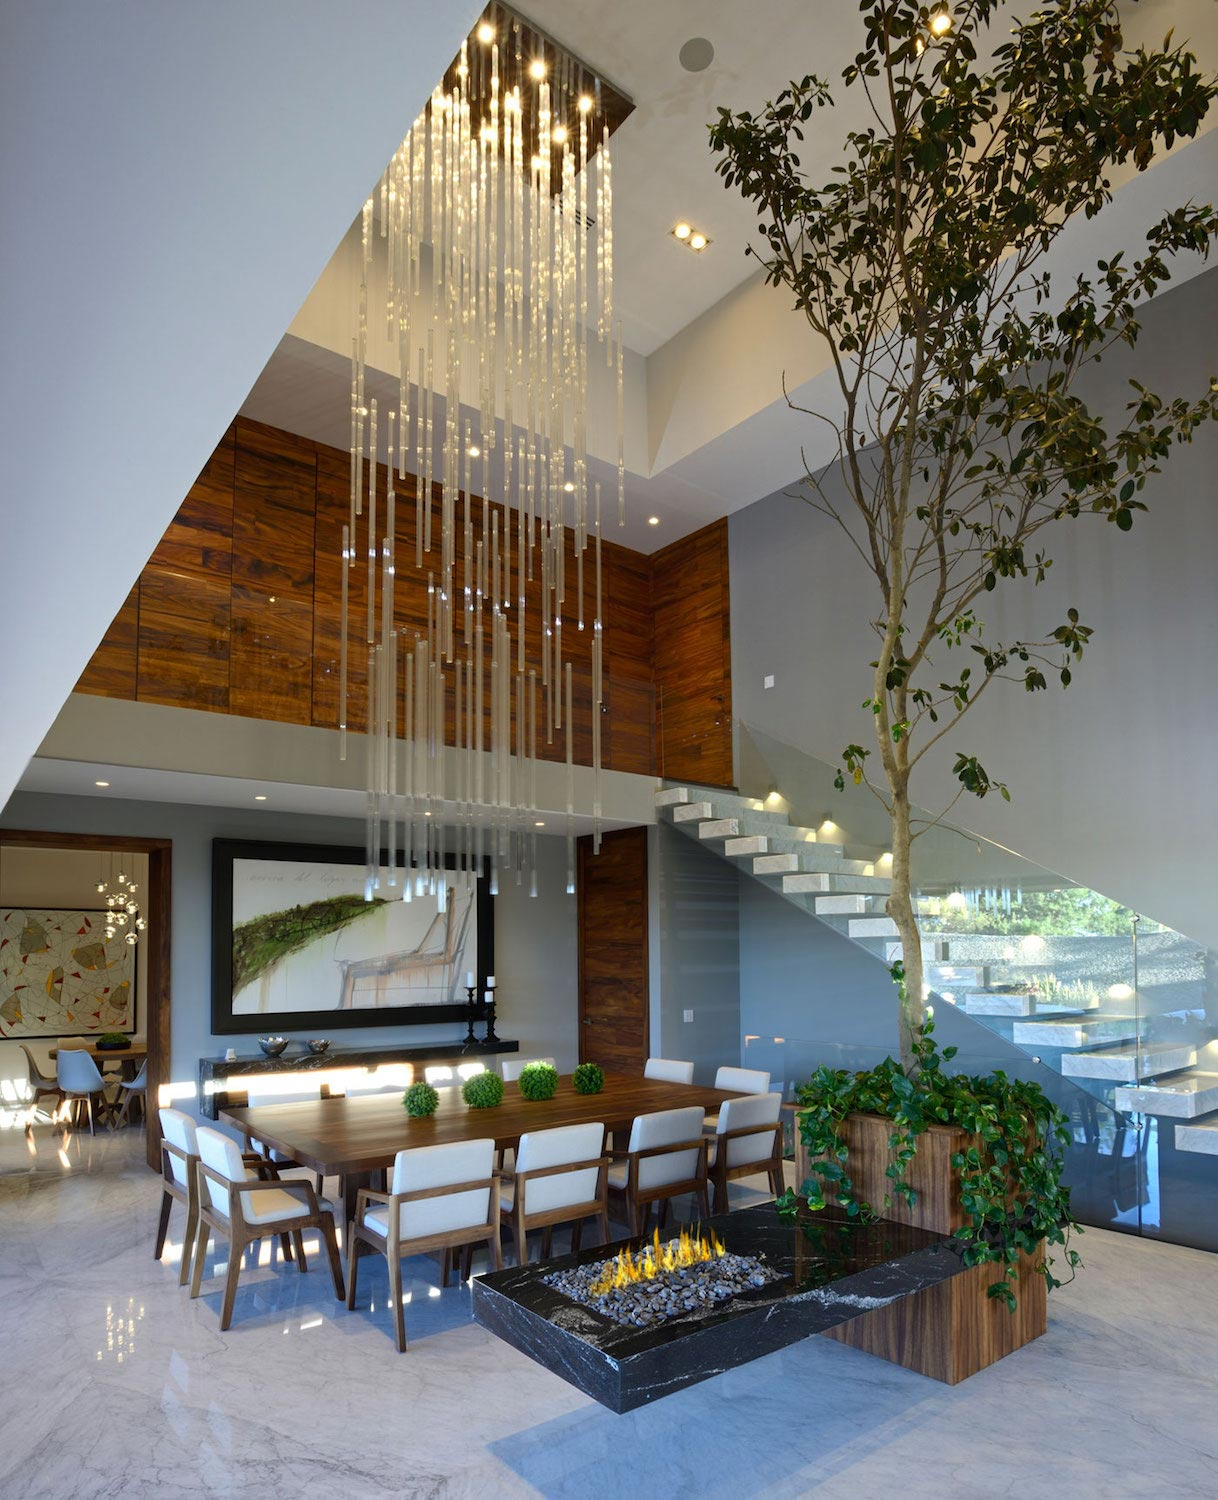 15 Majestic Contemporary Home Bar Designs For Inspiration: Modern Atrium House With Large Double-height Space Living